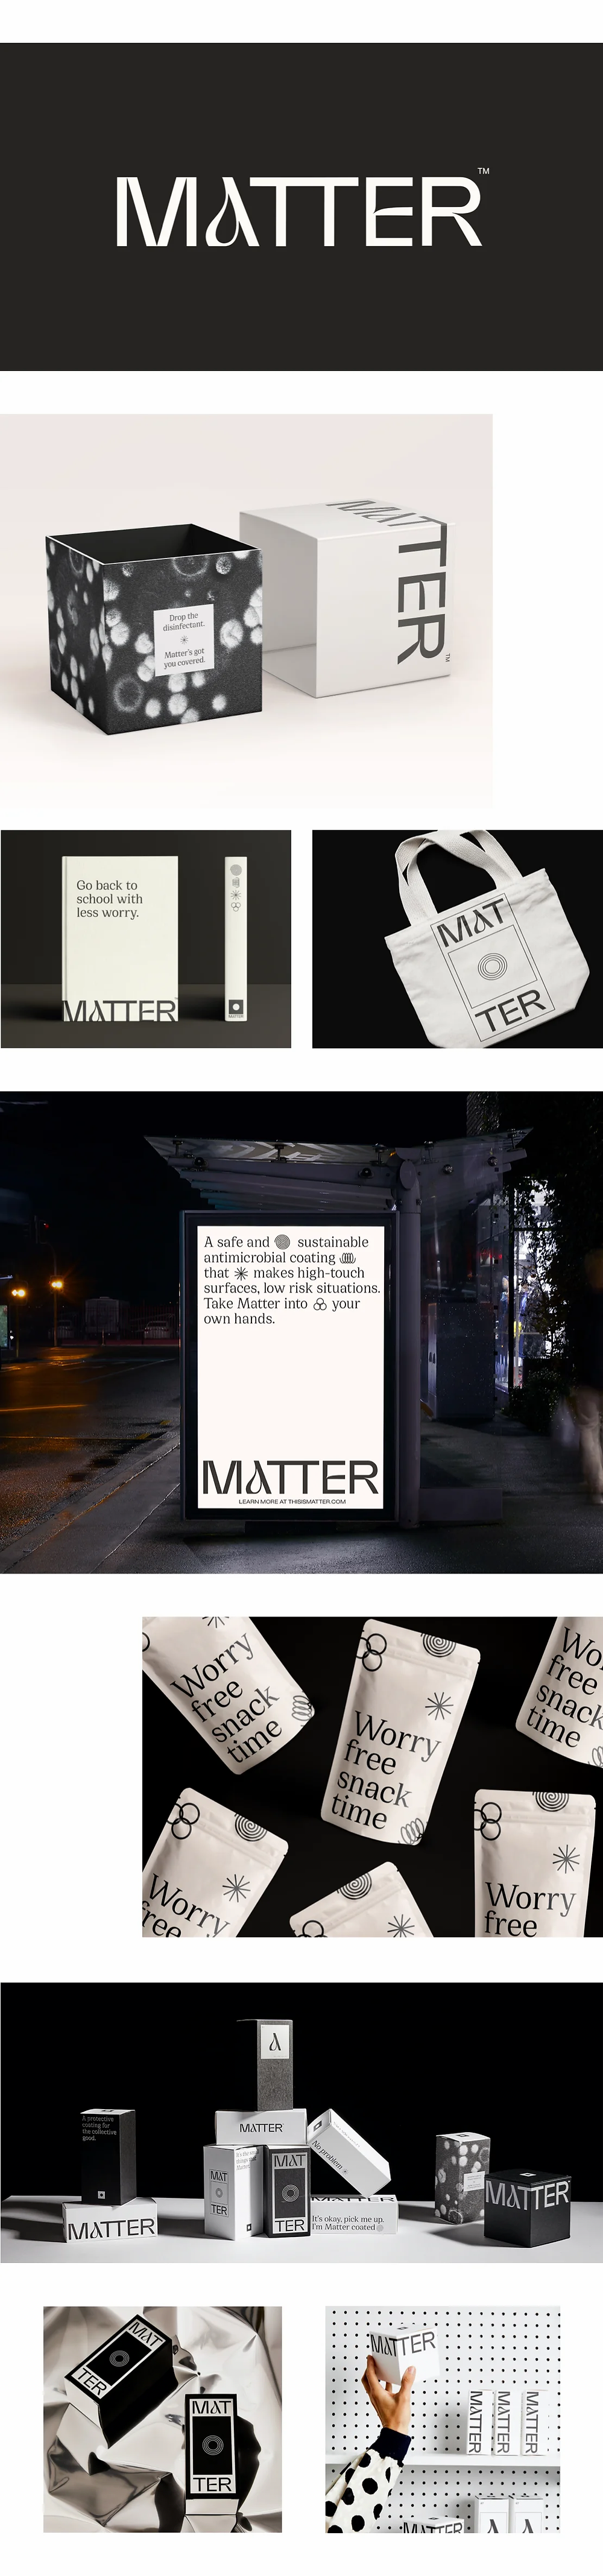 Best branding of 2020: Matter by Designsake Studio